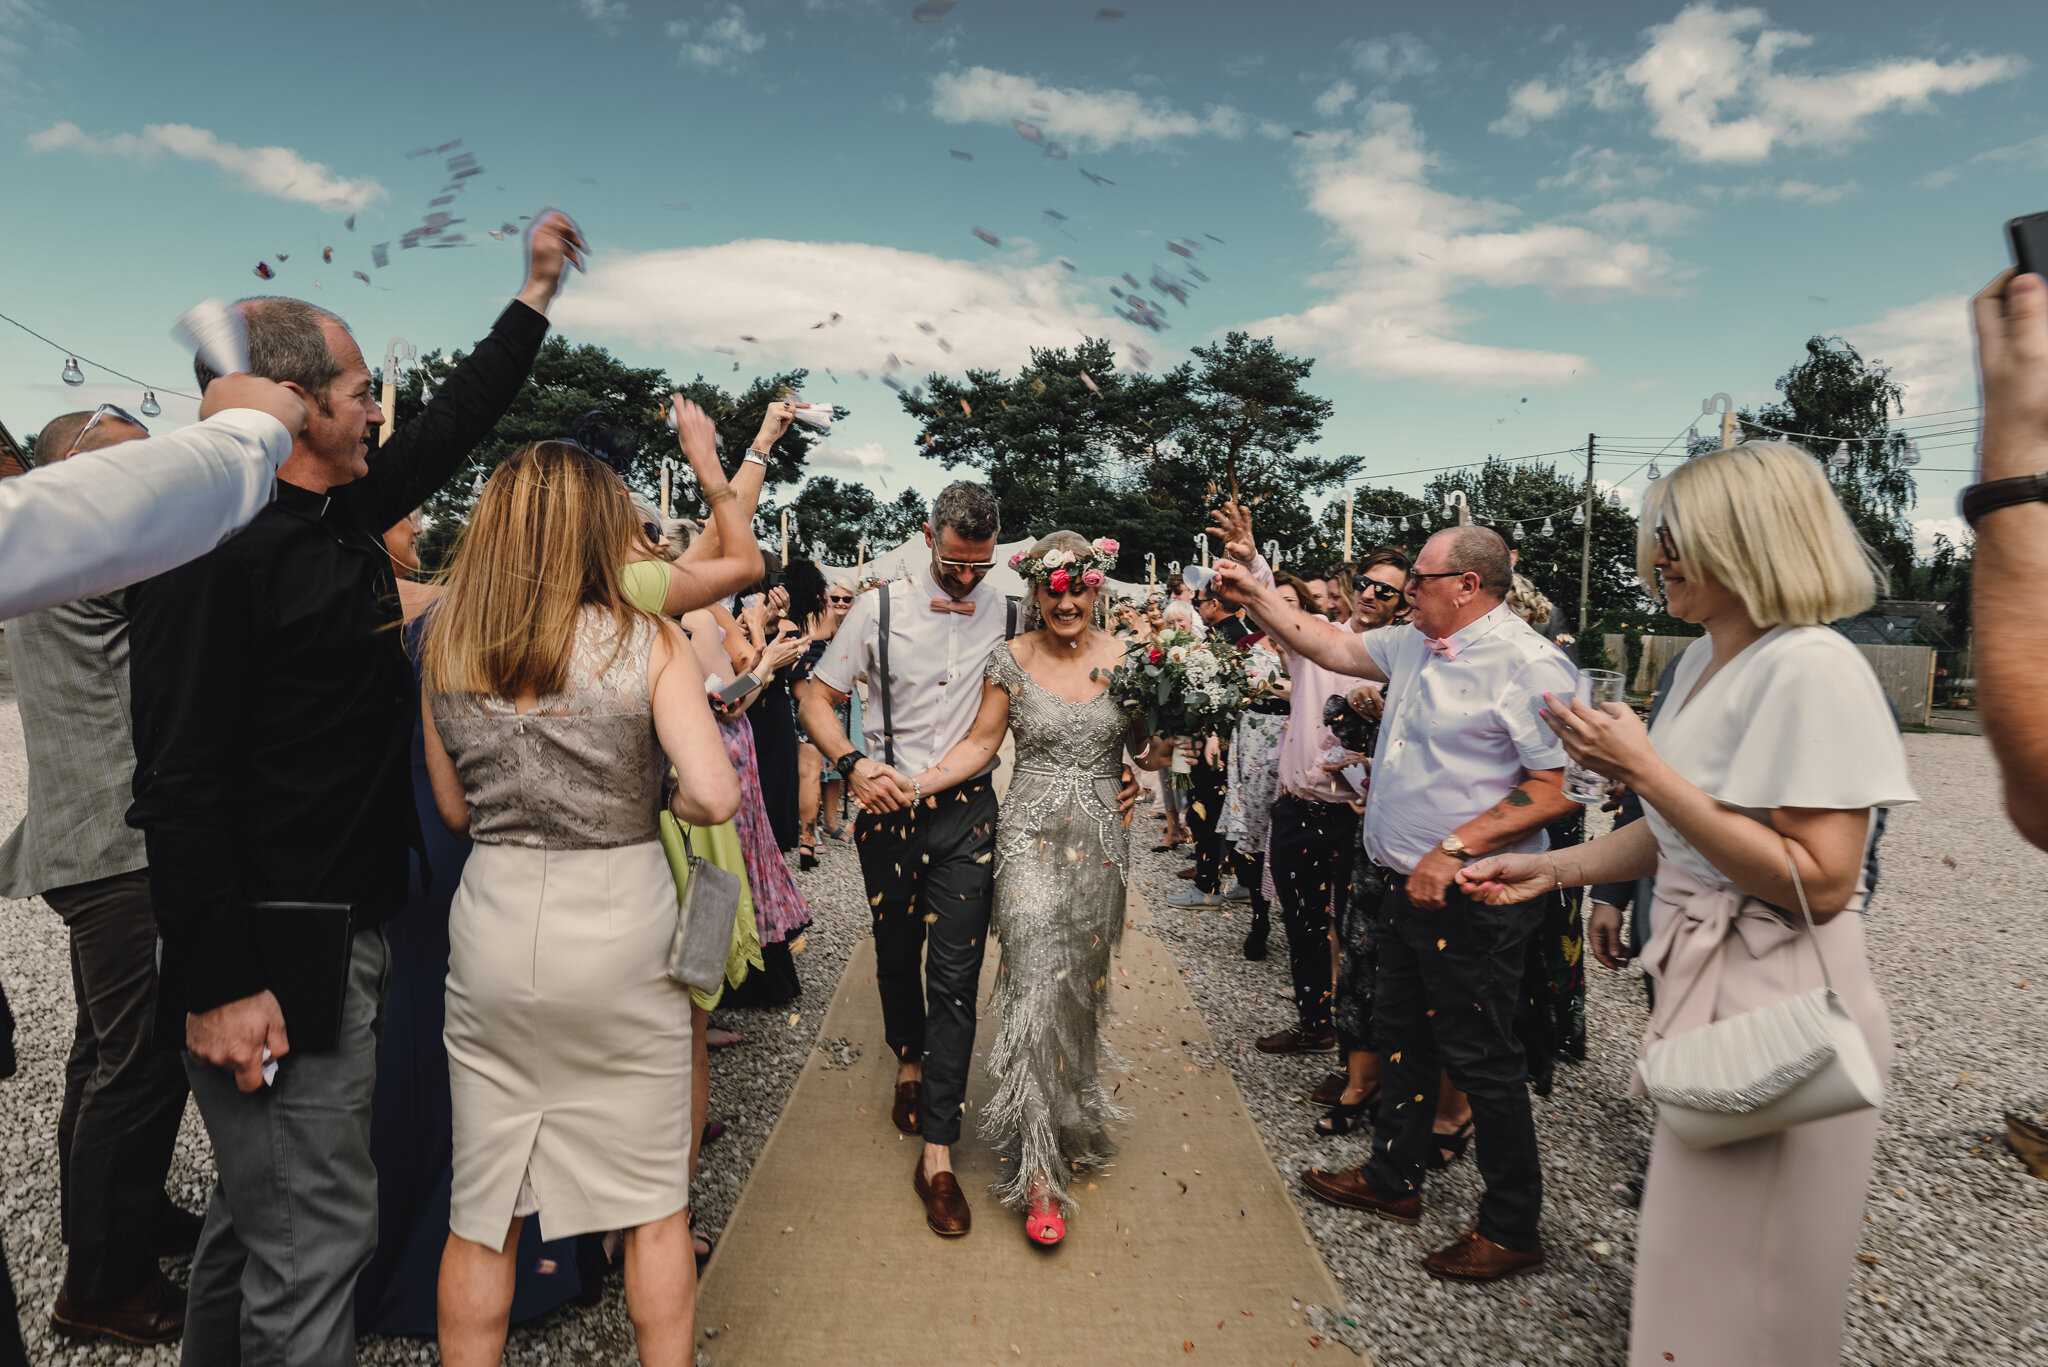 Festival-Barn-Wedding-Shropshire-Pimhill-Barn-Wedding-PhotographyLisa and Rich-217.jpg